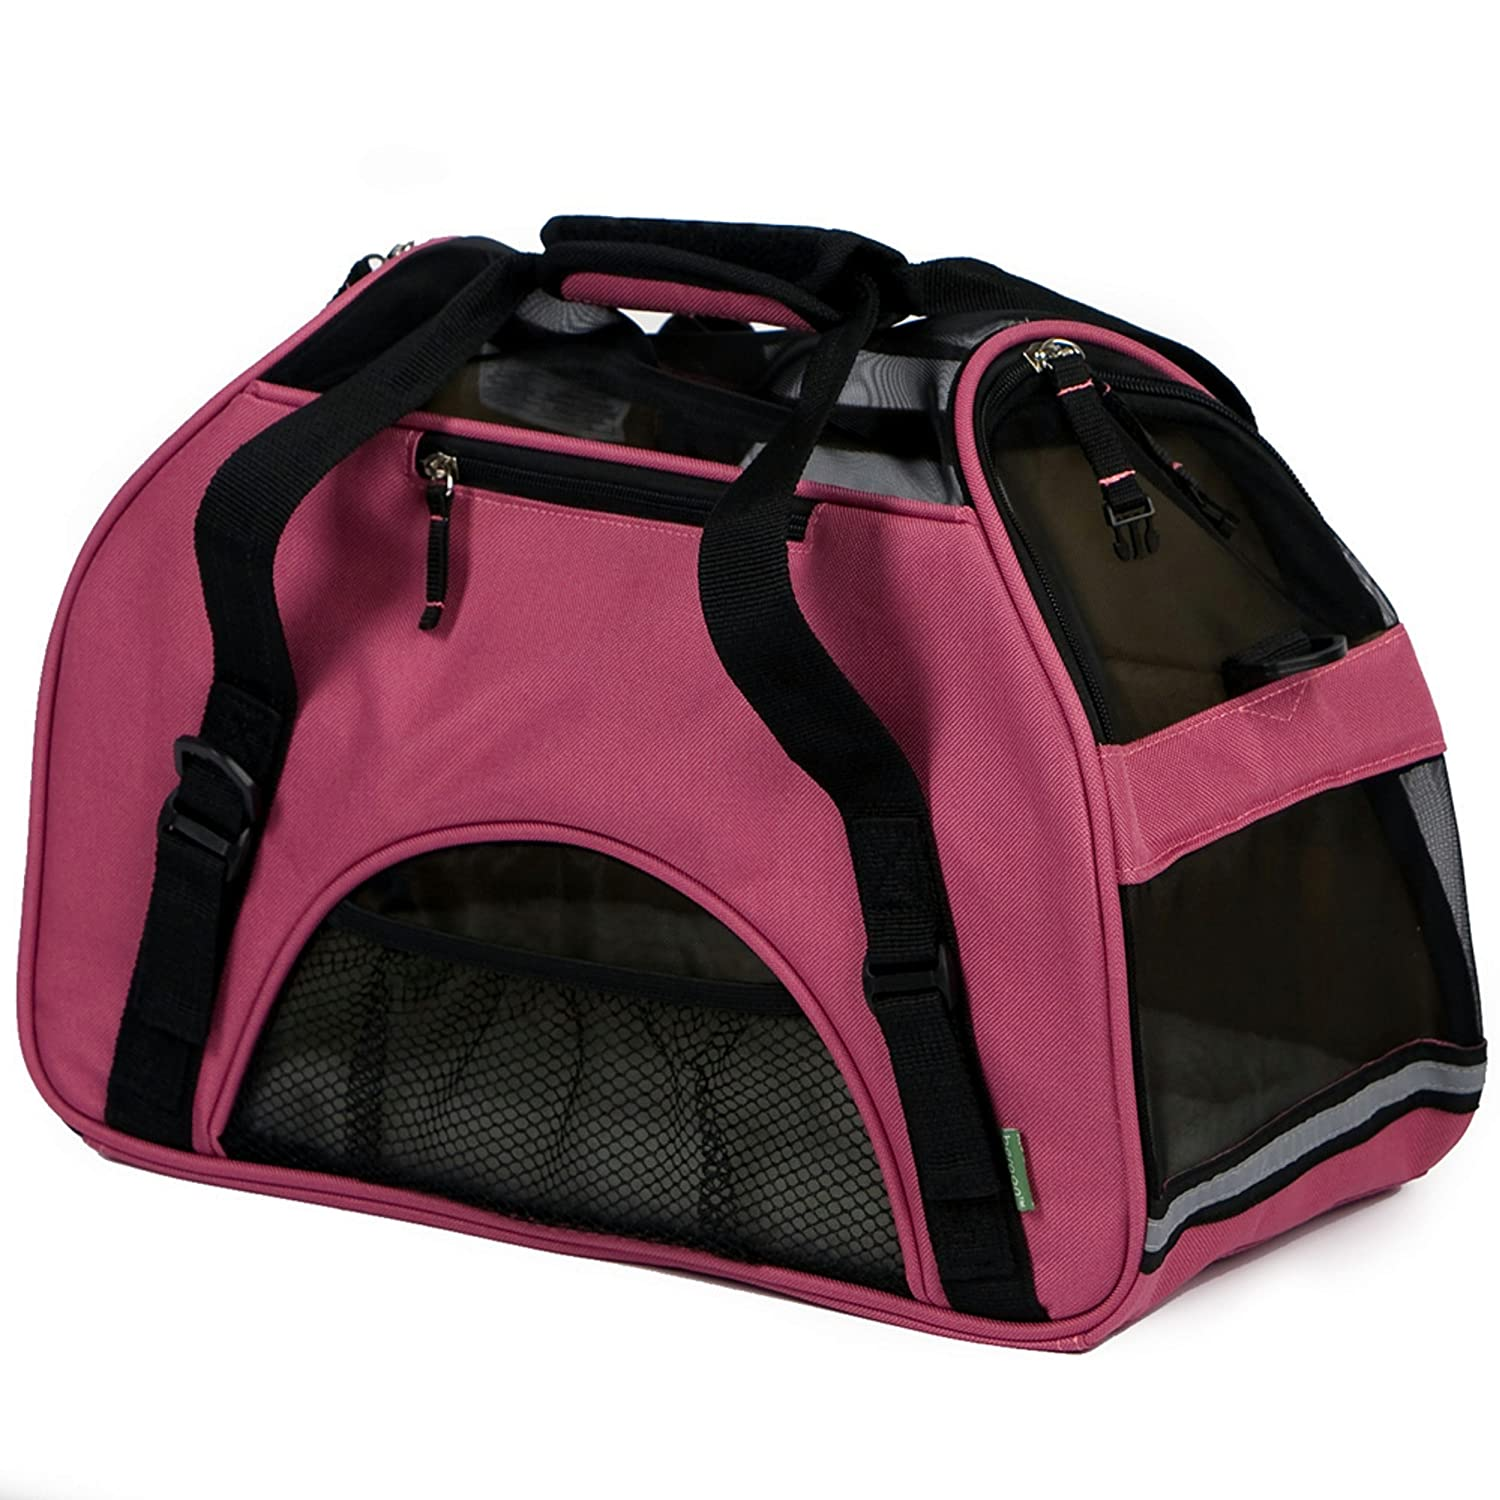 pink Wine SmallBergan 88042 Small Comfort Carrier Soft Sided Pet Carrier, Mineral bluee